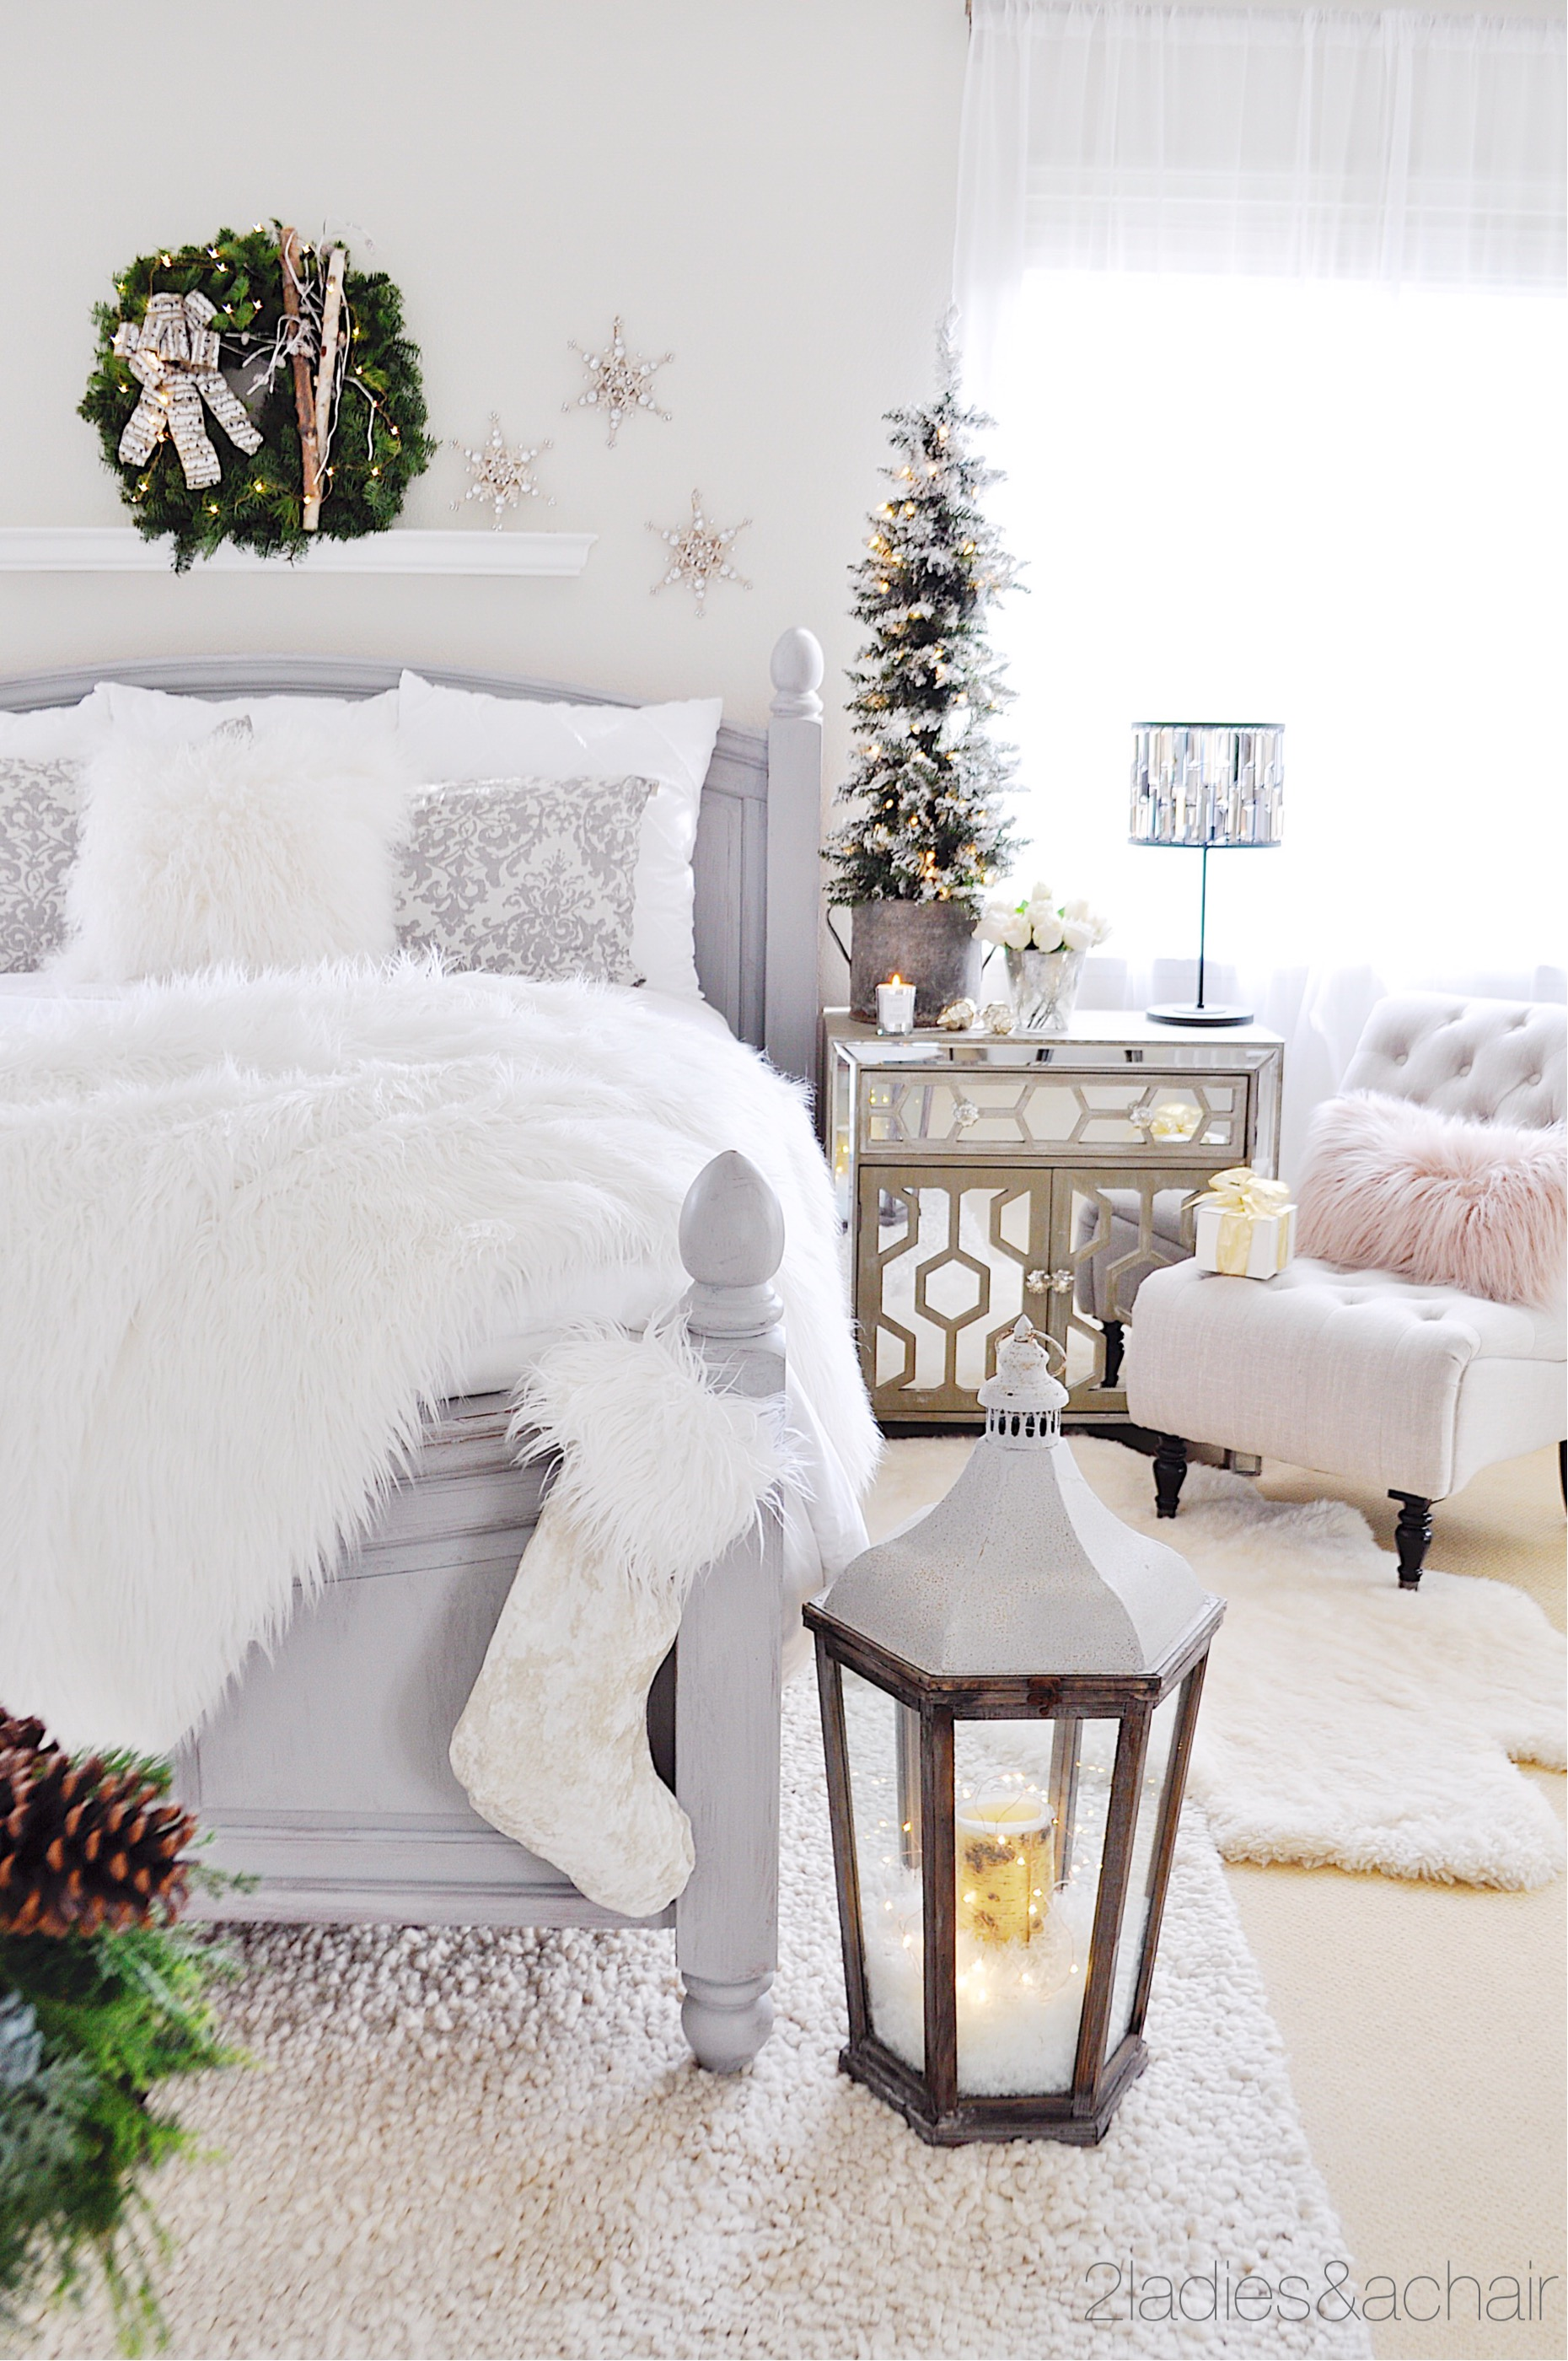 Simple Christmas Decor Ideas For Your Bedroom \u2014 2 Ladies \u0026 A